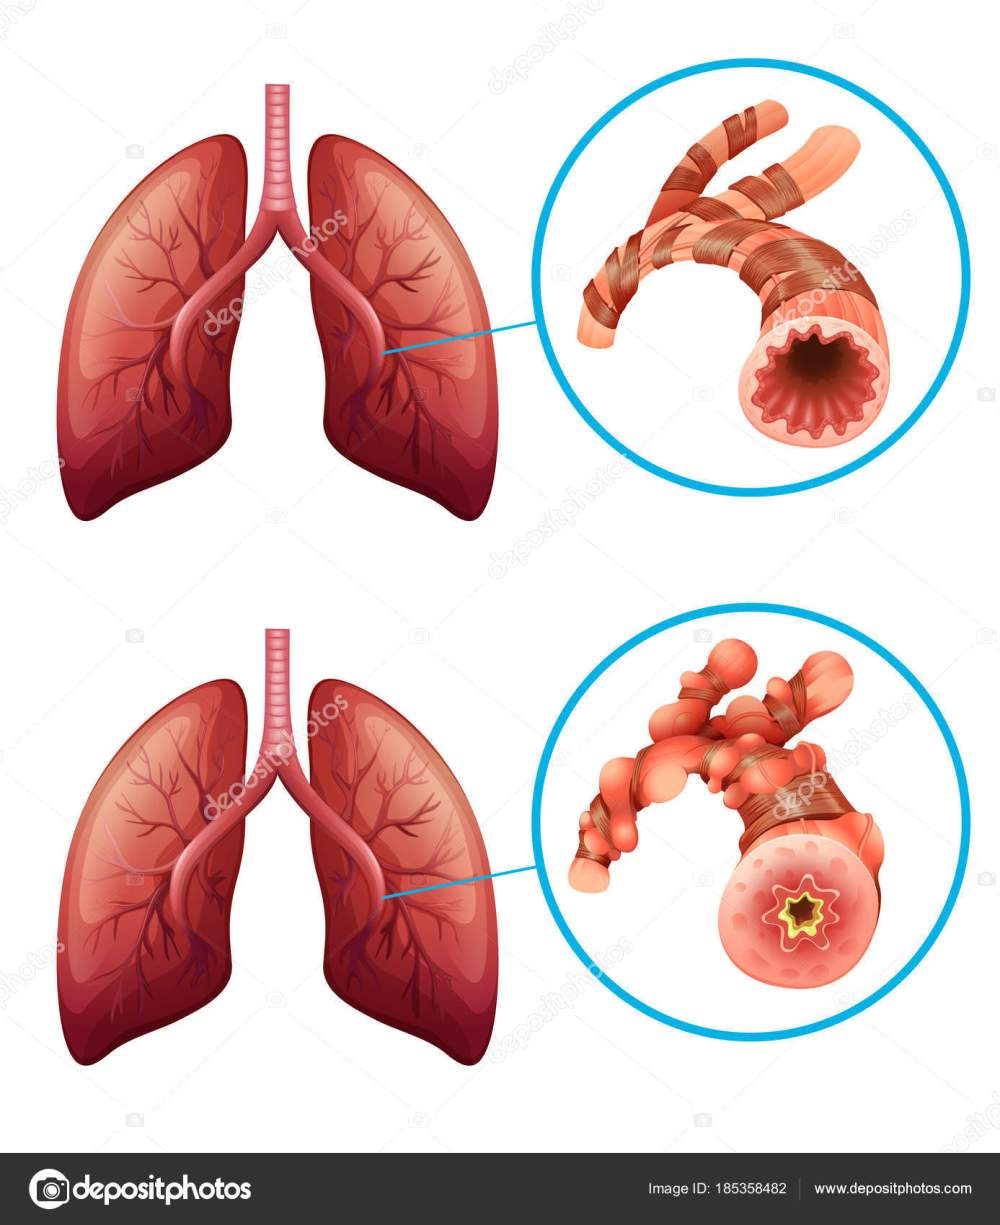 medium resolution of diagram showing lungs with disease illustration vector by blueringmedia